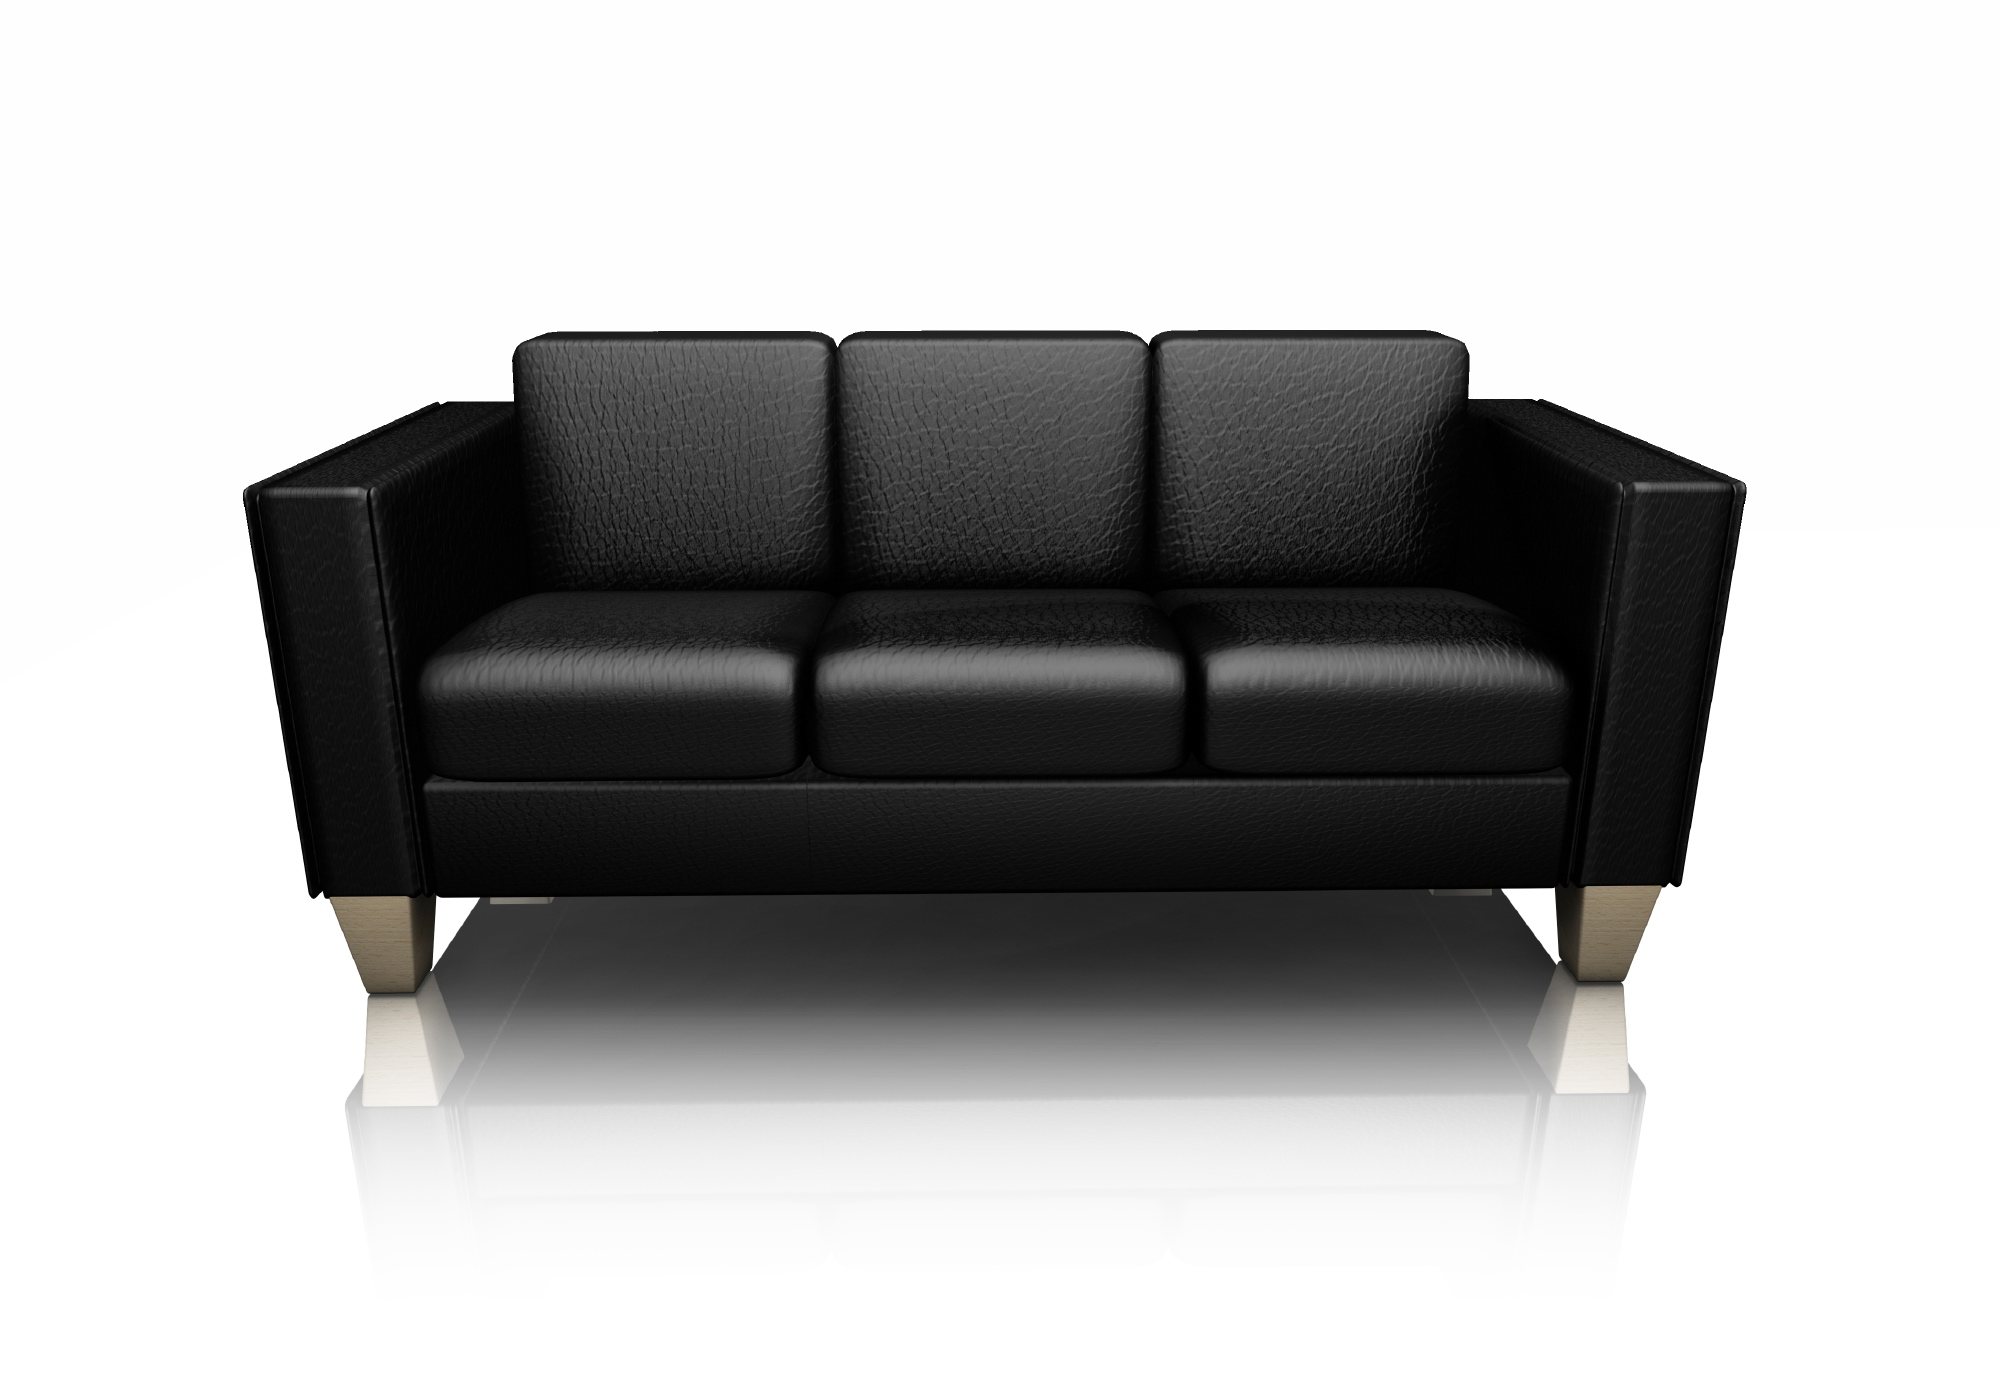 New Modern Sofa Images Ultra Modern Sofa Designs Room